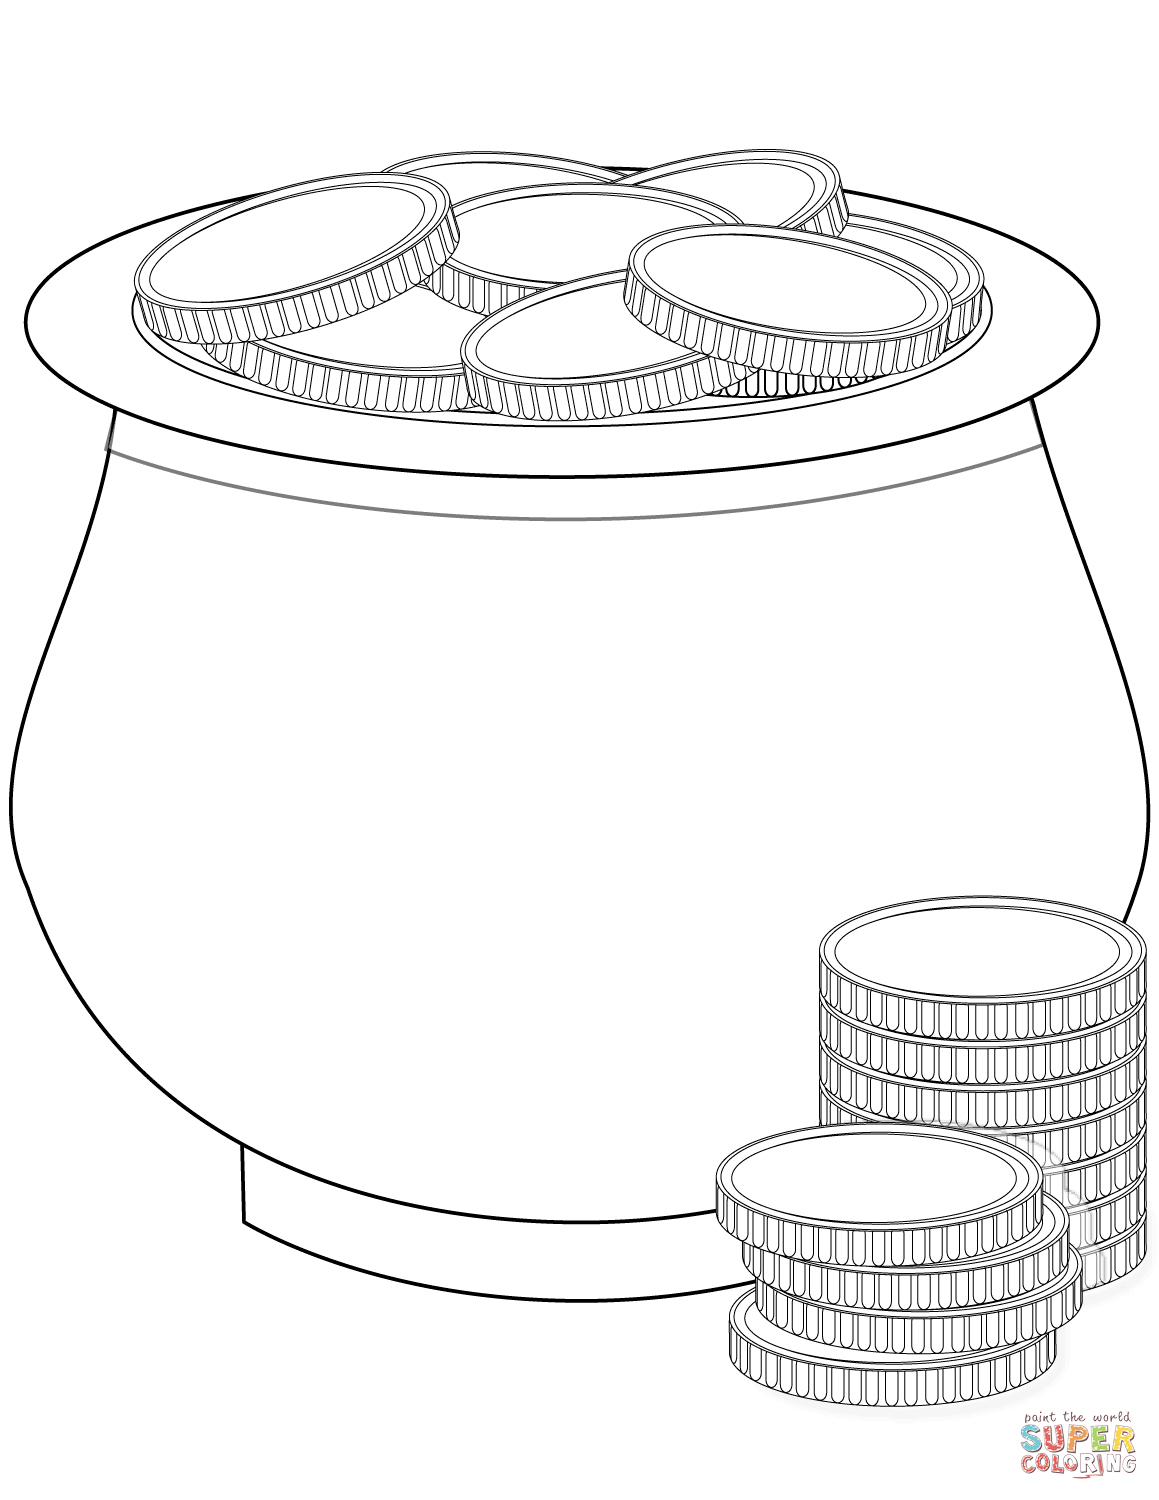 Pot Of Gold Coins Coloring Page | Free Printable Coloring Pages - Free Printable Pot Of Gold Coloring Pages